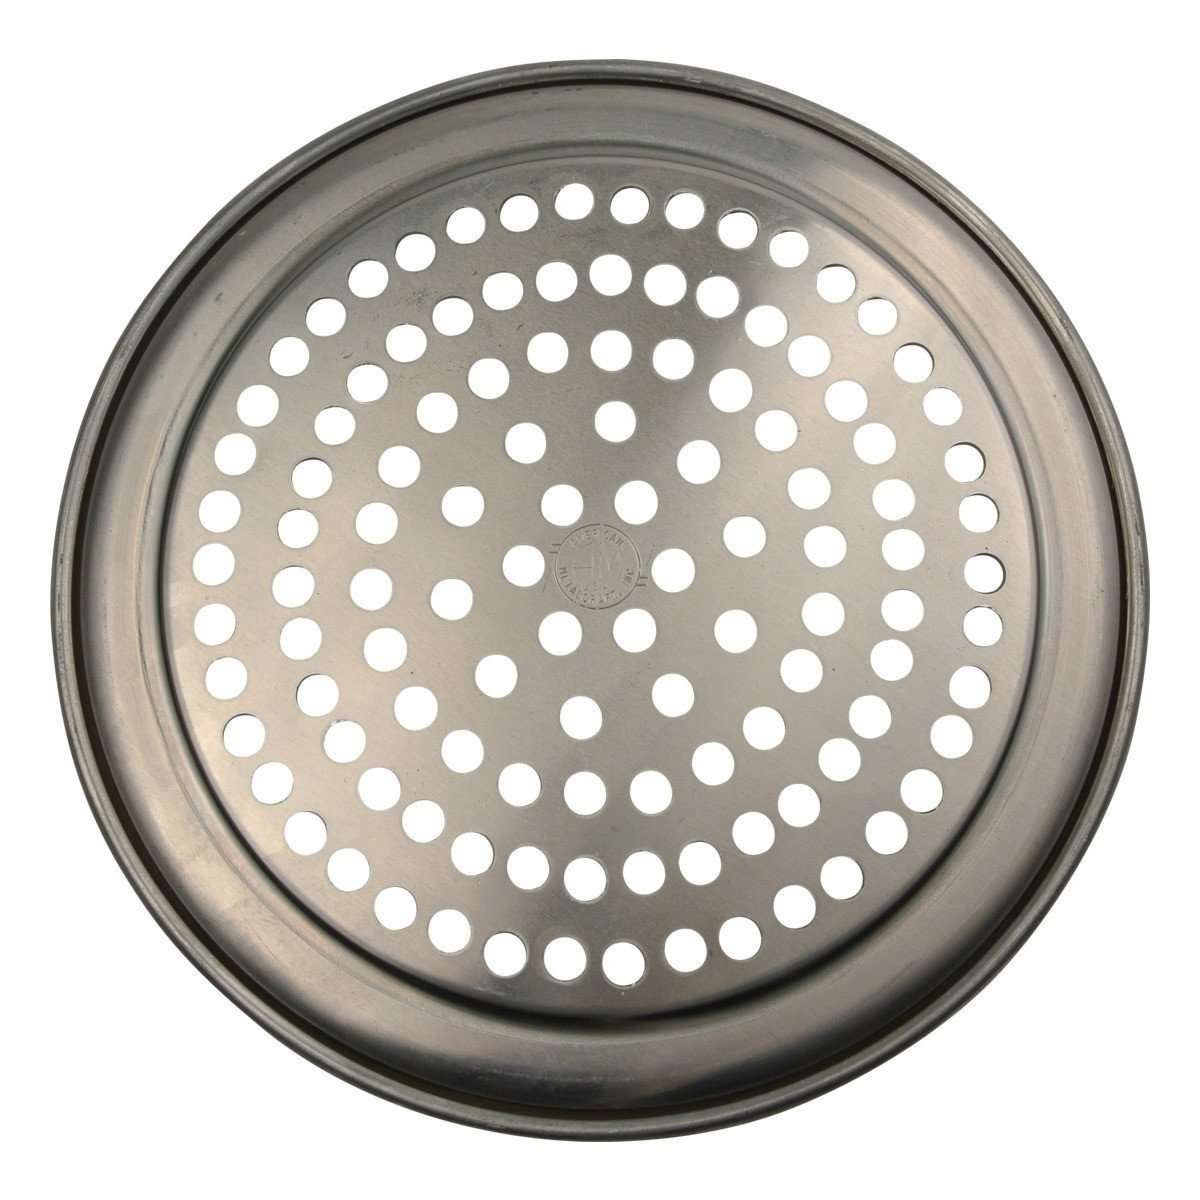 Wide Rim Perforated Aluminum Pizza Pan